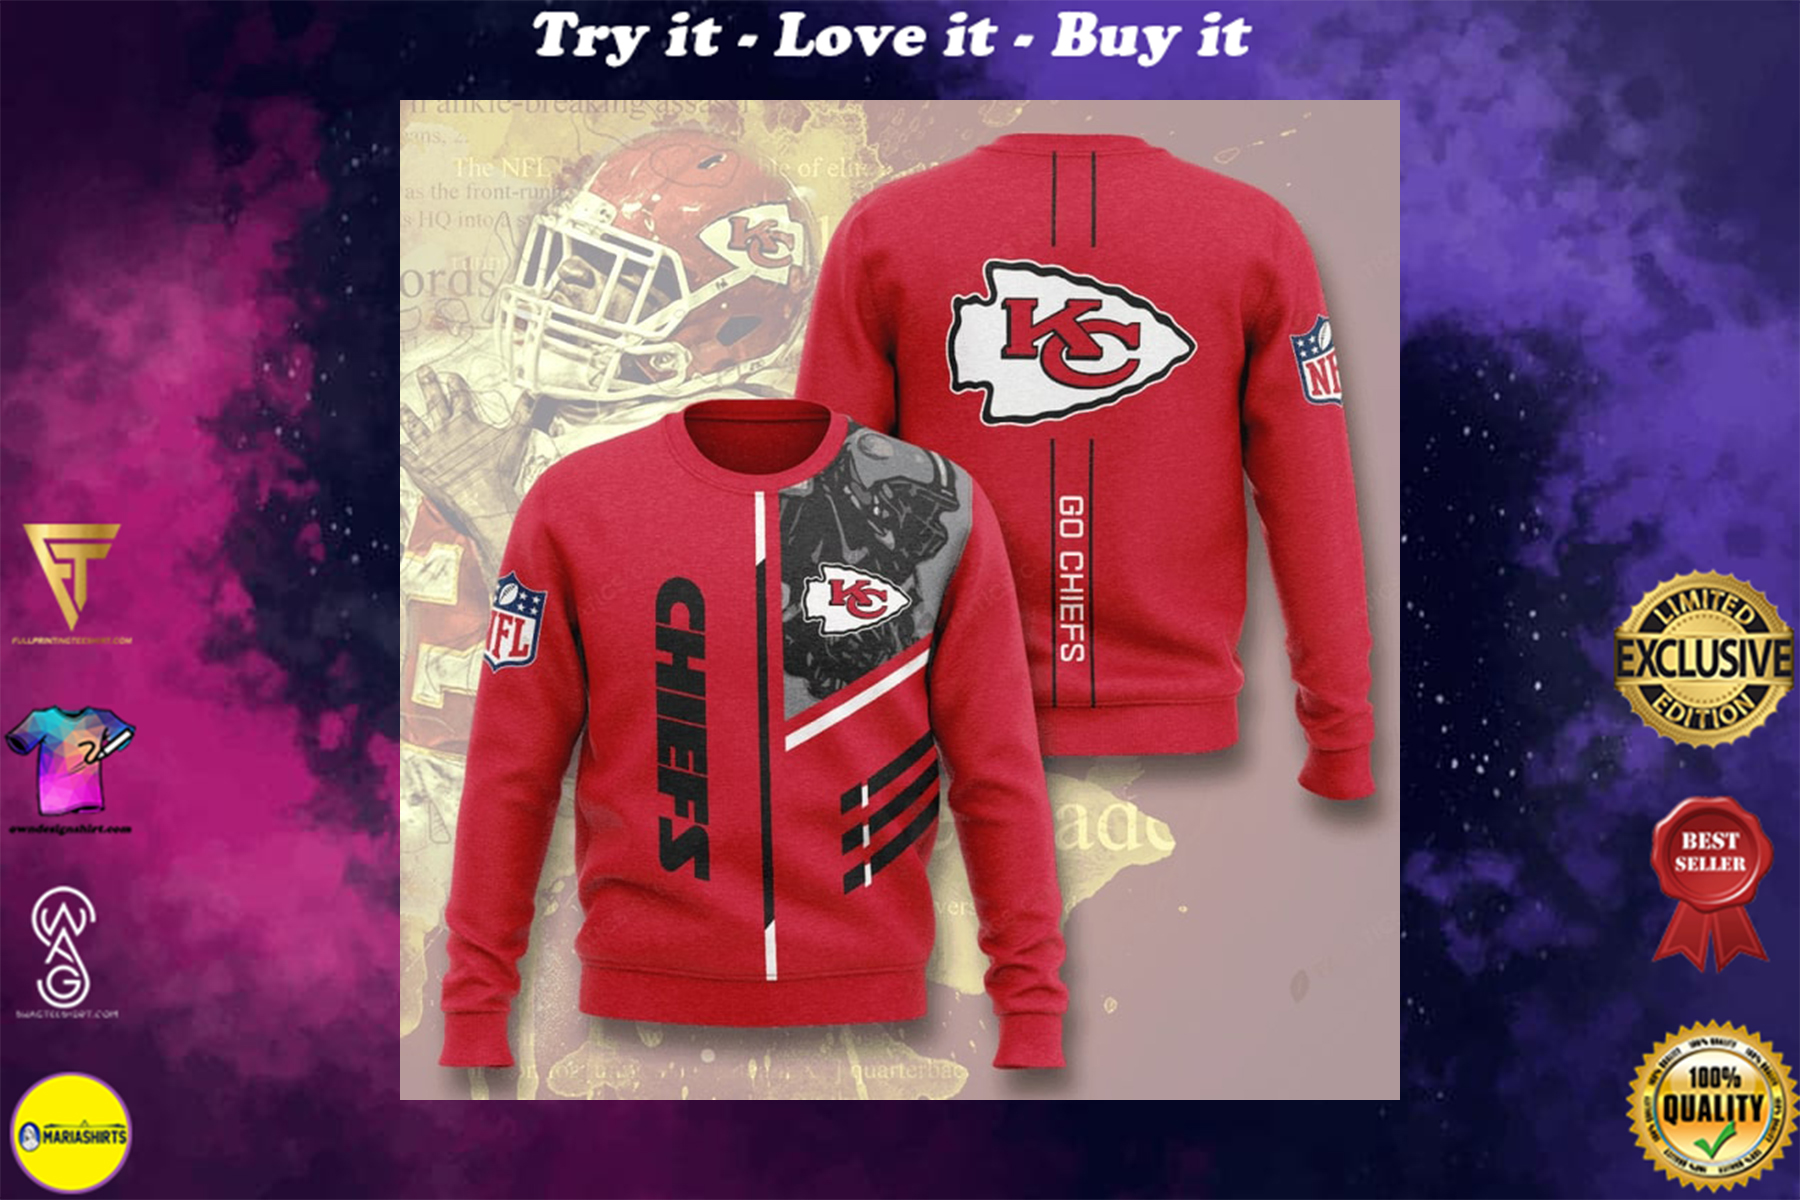 [special edition] kansas city chiefs go chiefs full printing ugly sweater - maria